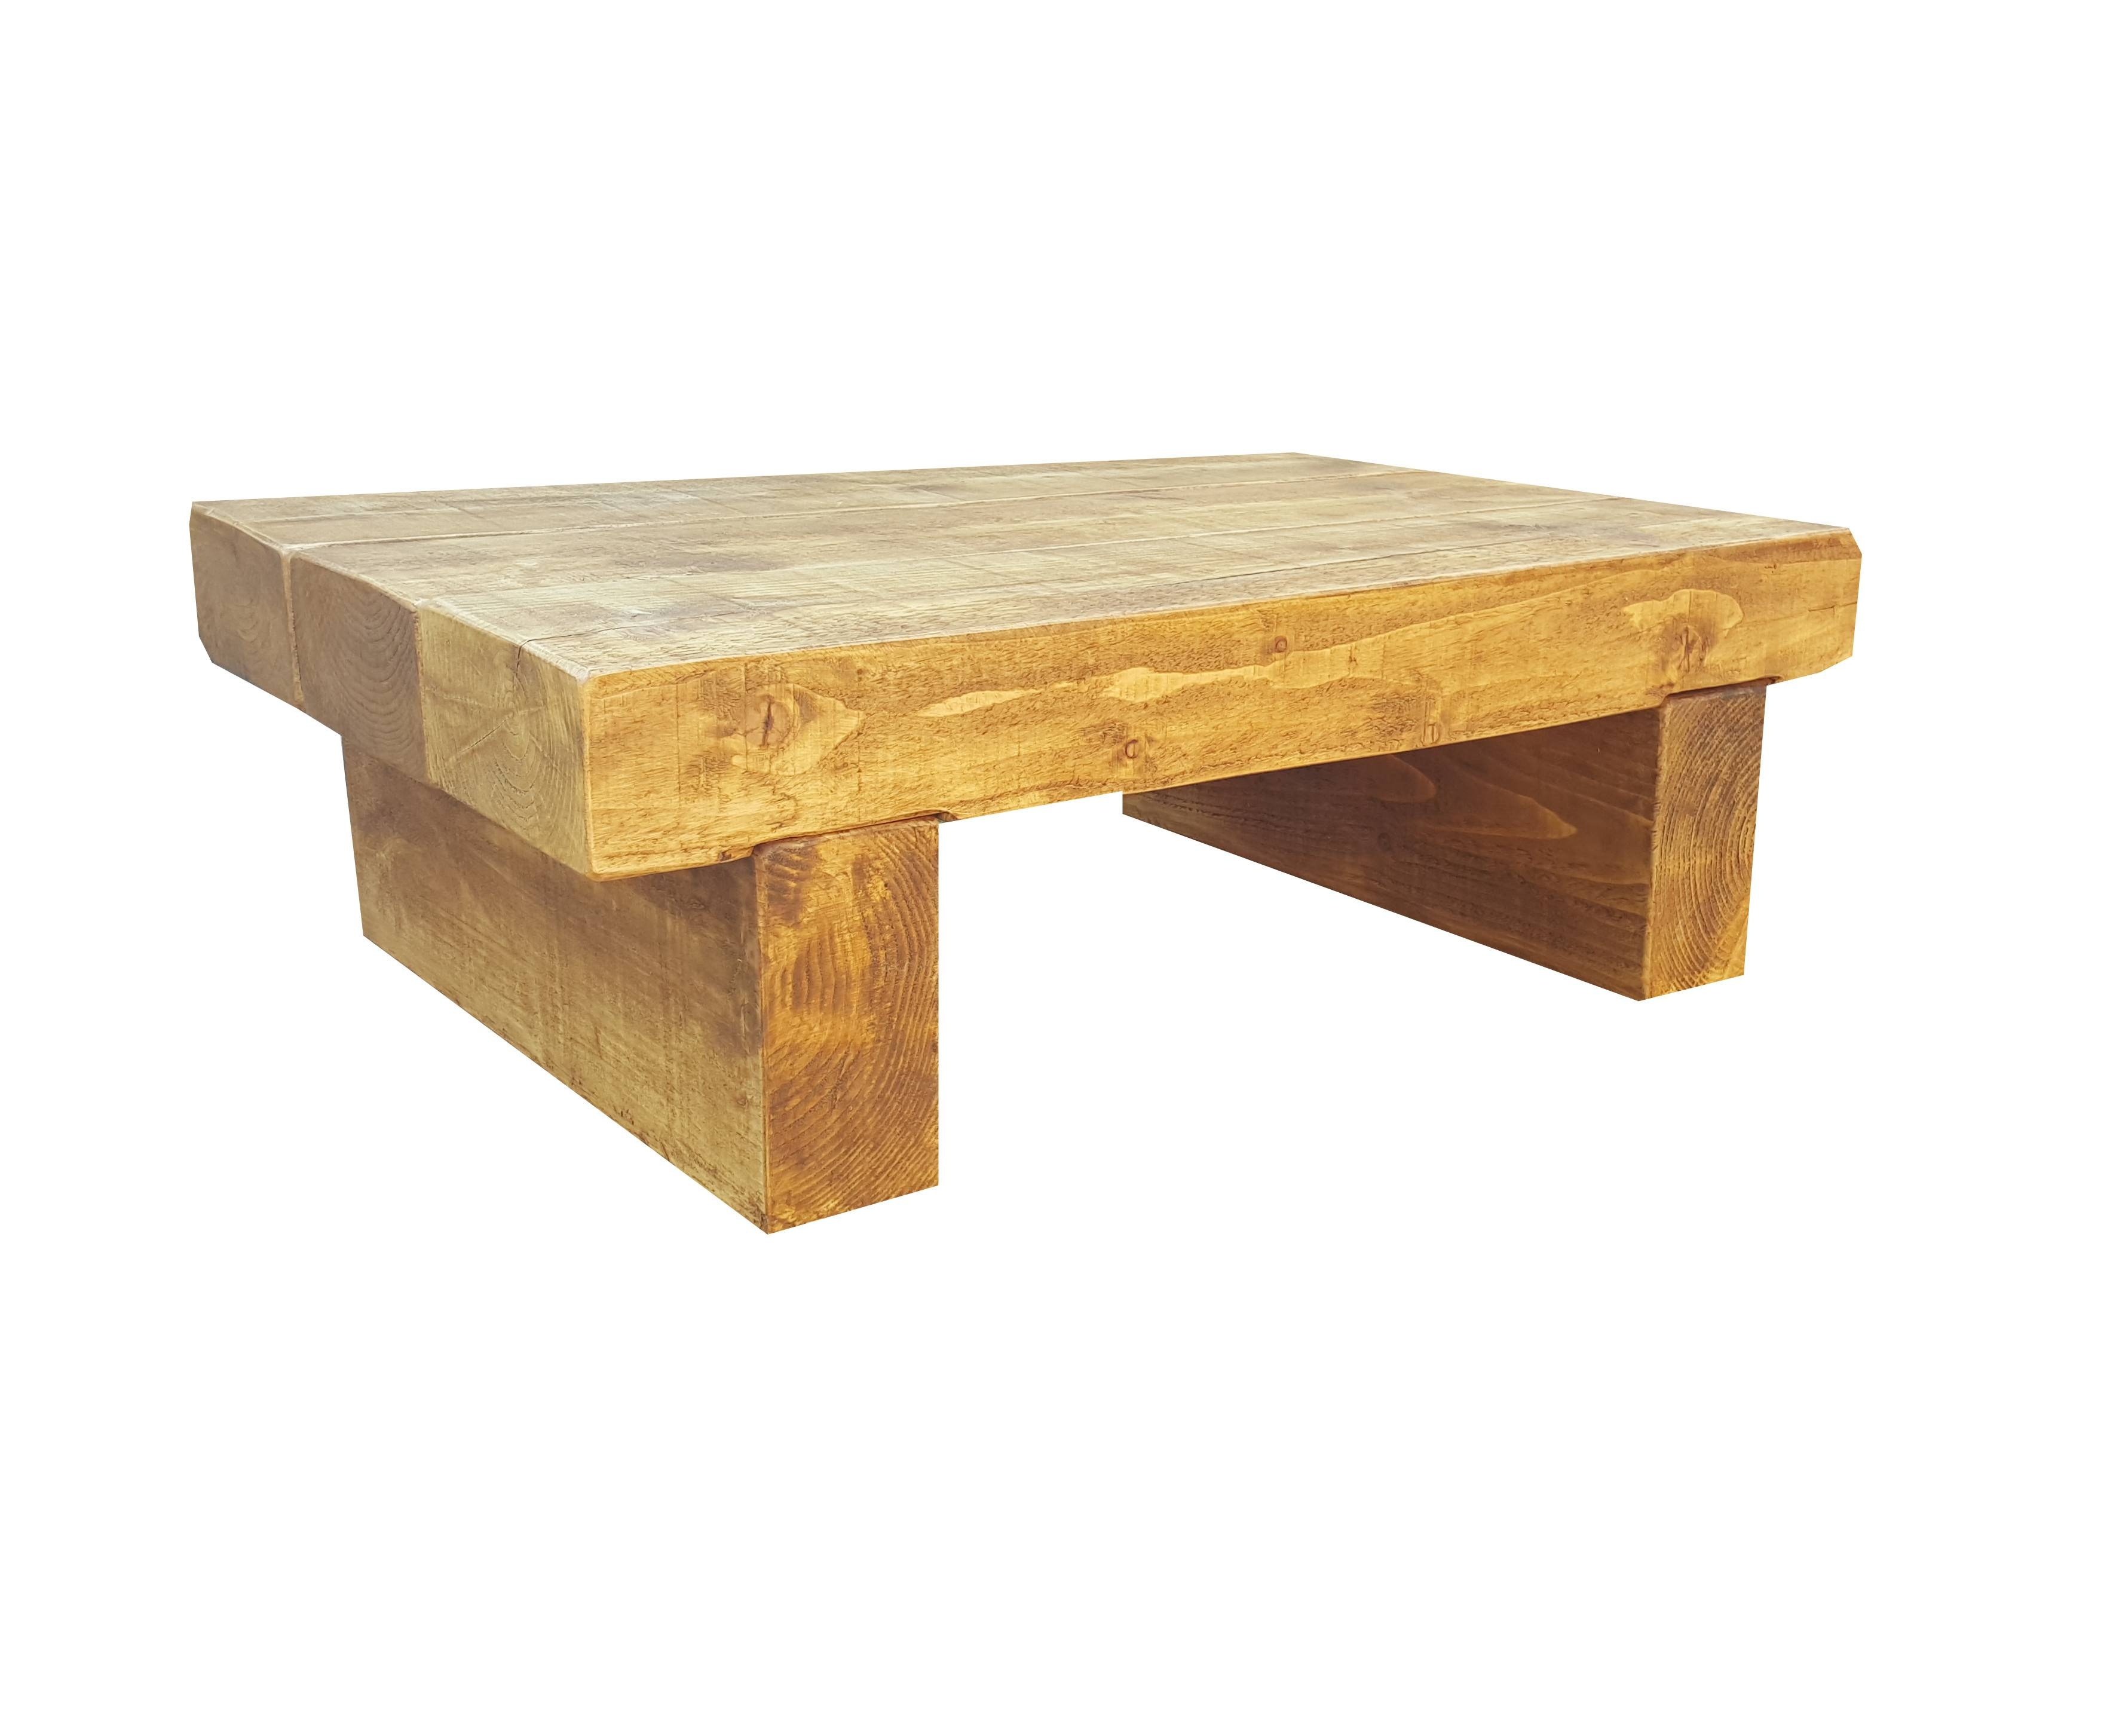 Block Coffee Table - The Cool Wood Company pertaining to Chunky Oak Coffee Tables (Image 7 of 30)